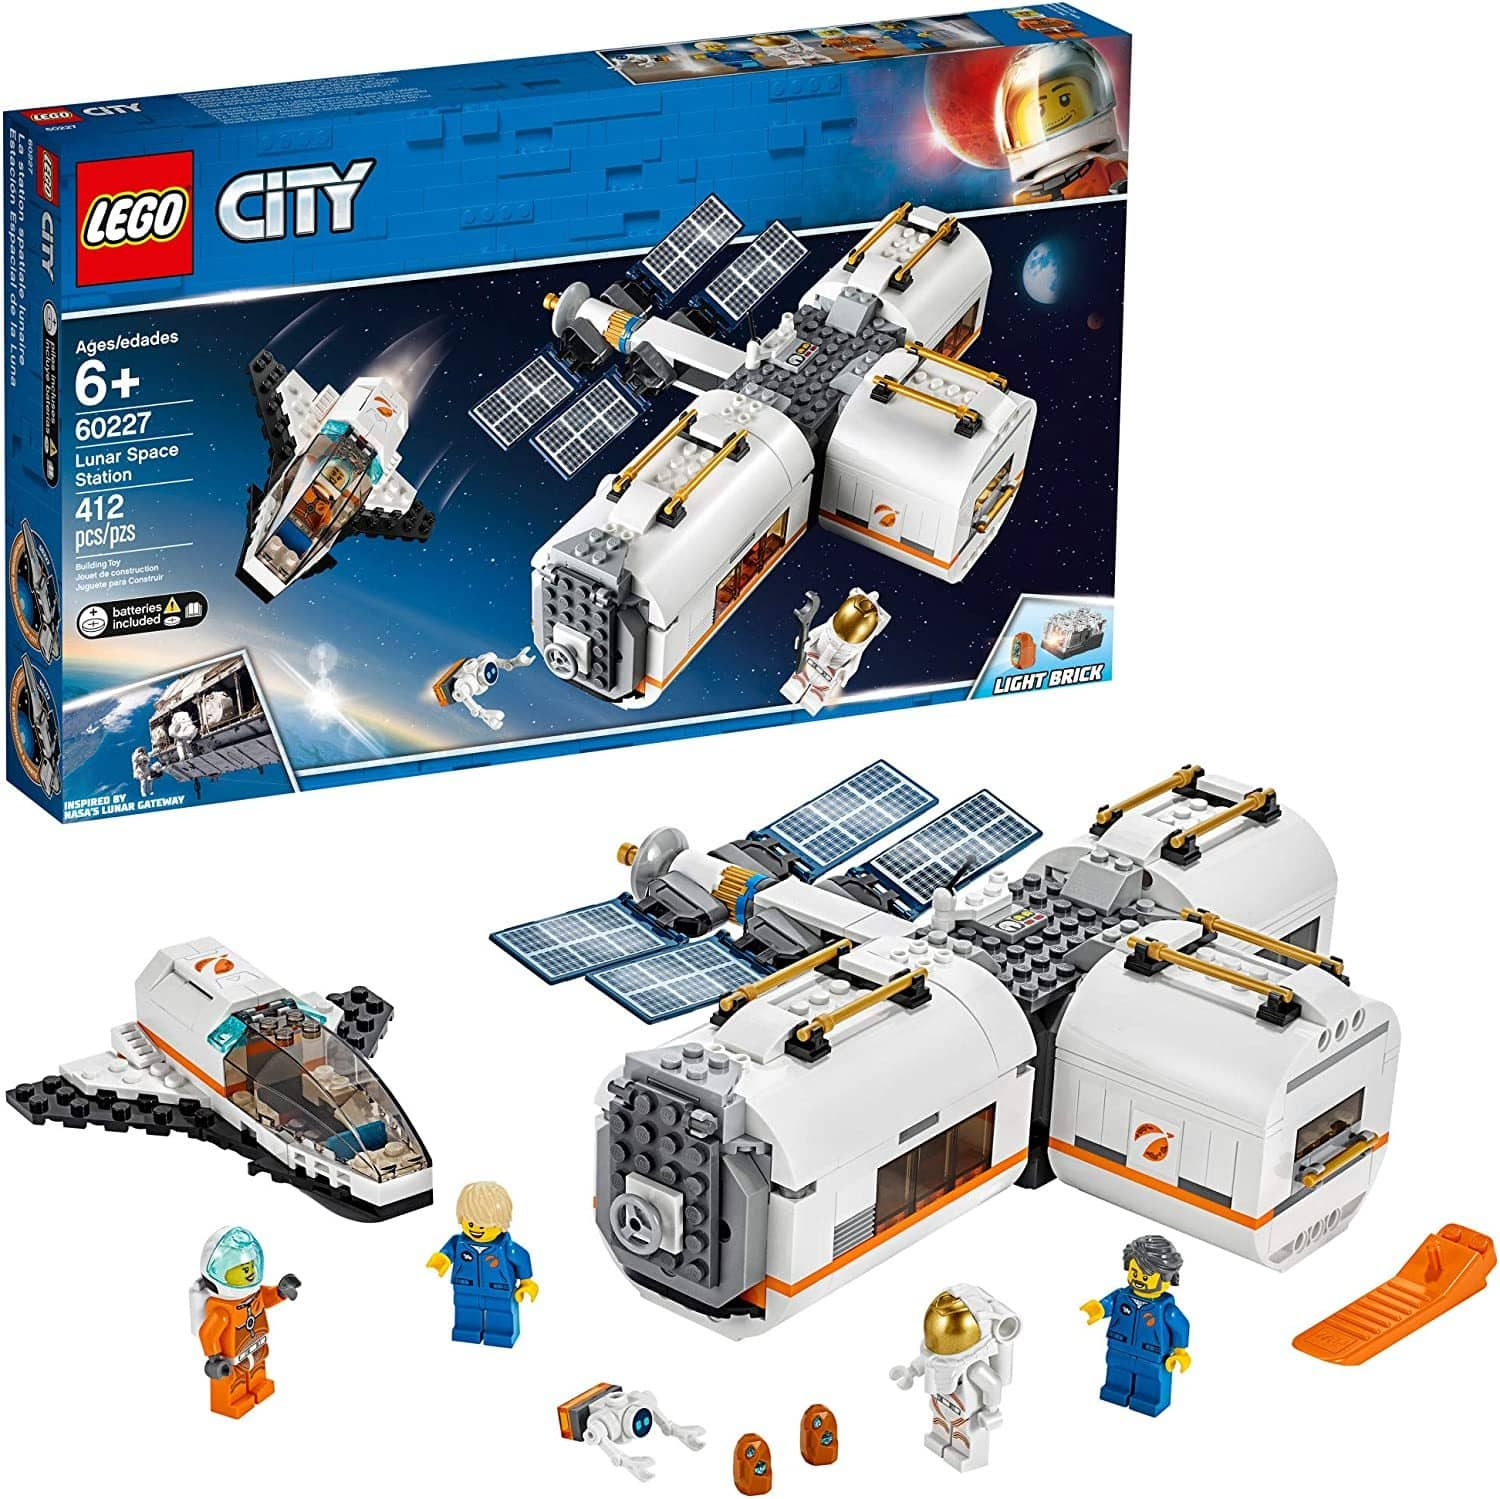 LEGO 60227: City: Lunar Space Station (412 Pieces)-Kidding Around NYC